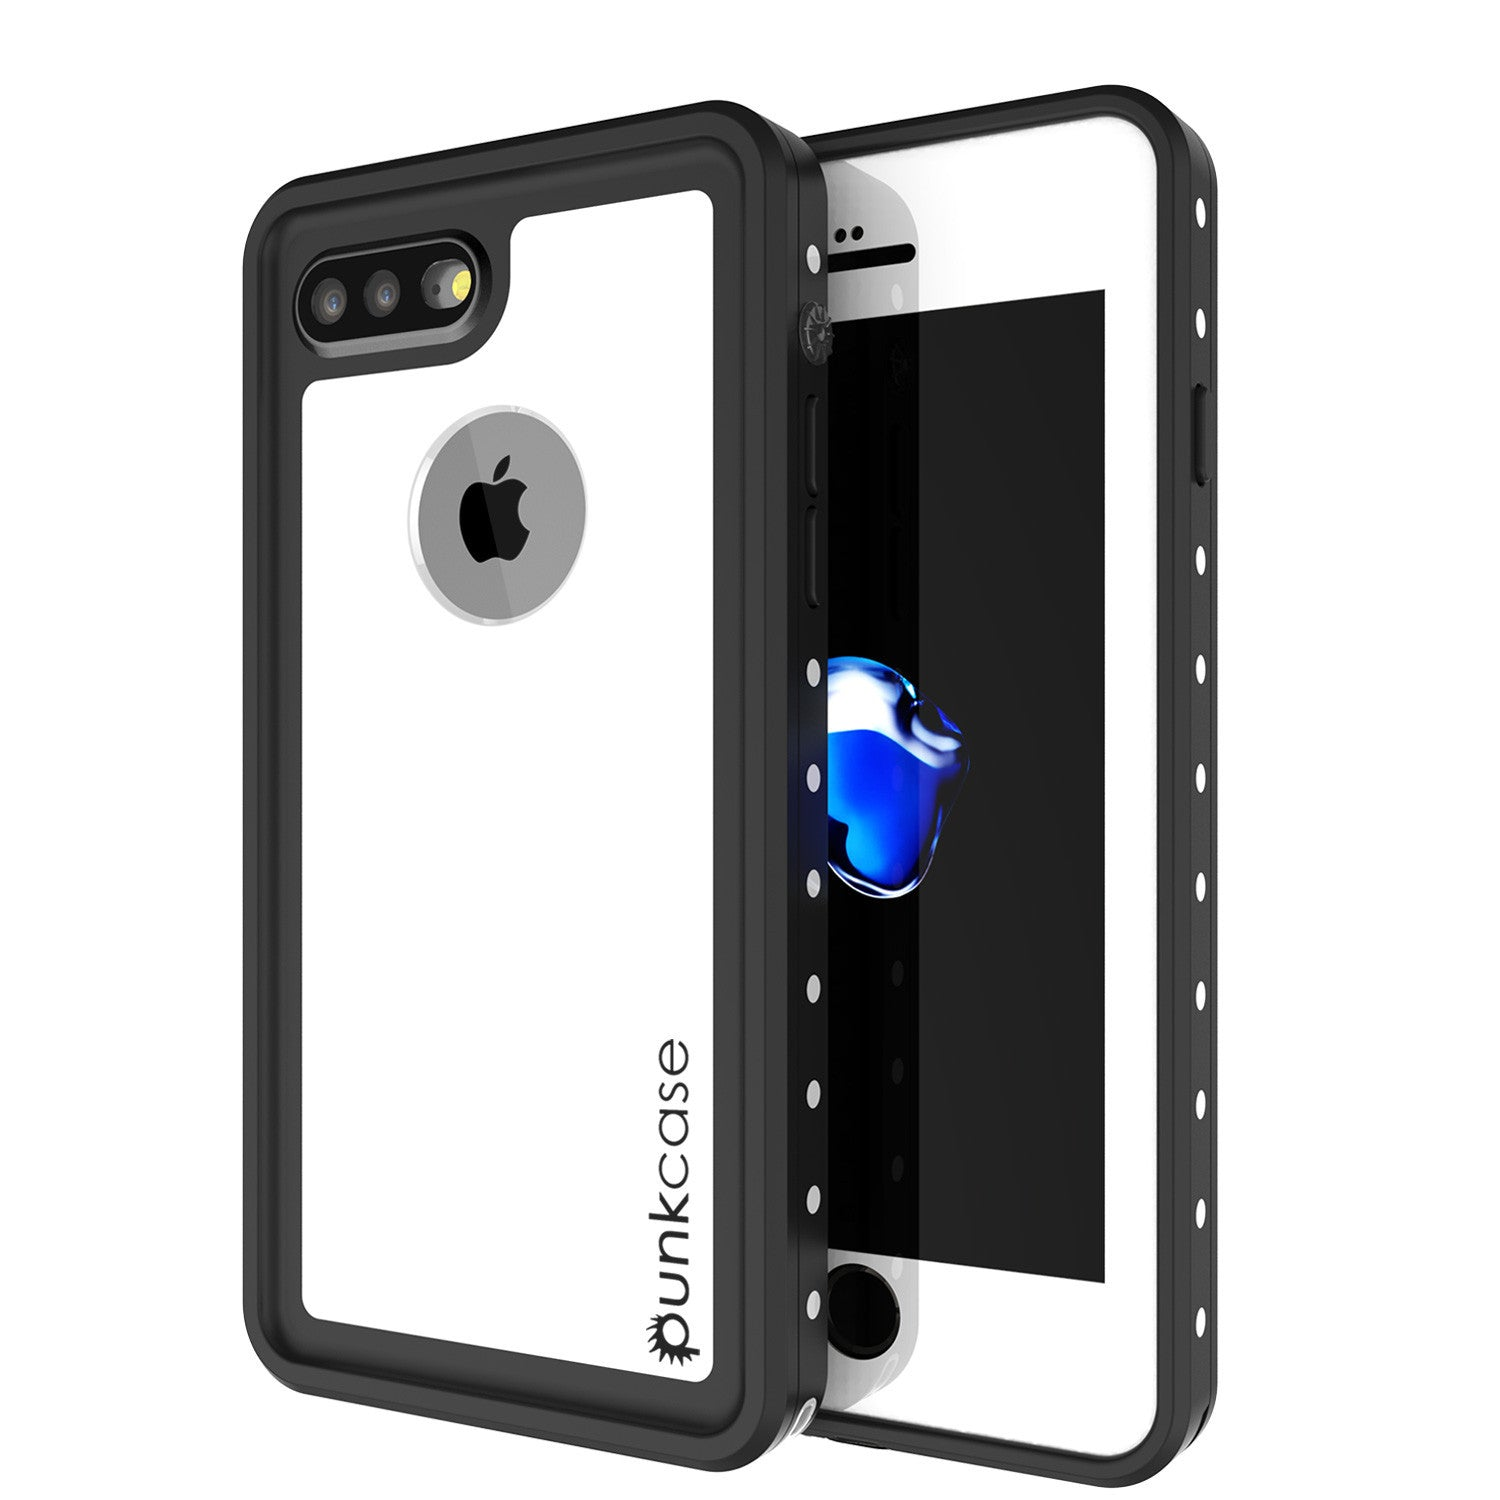 iPhone 8+ Plus Waterproof Case, Punkcase [StudStar Series] [White] [Slim Fit] [Shockproof] [Dirtproof] [Snowproof] Armor Cover